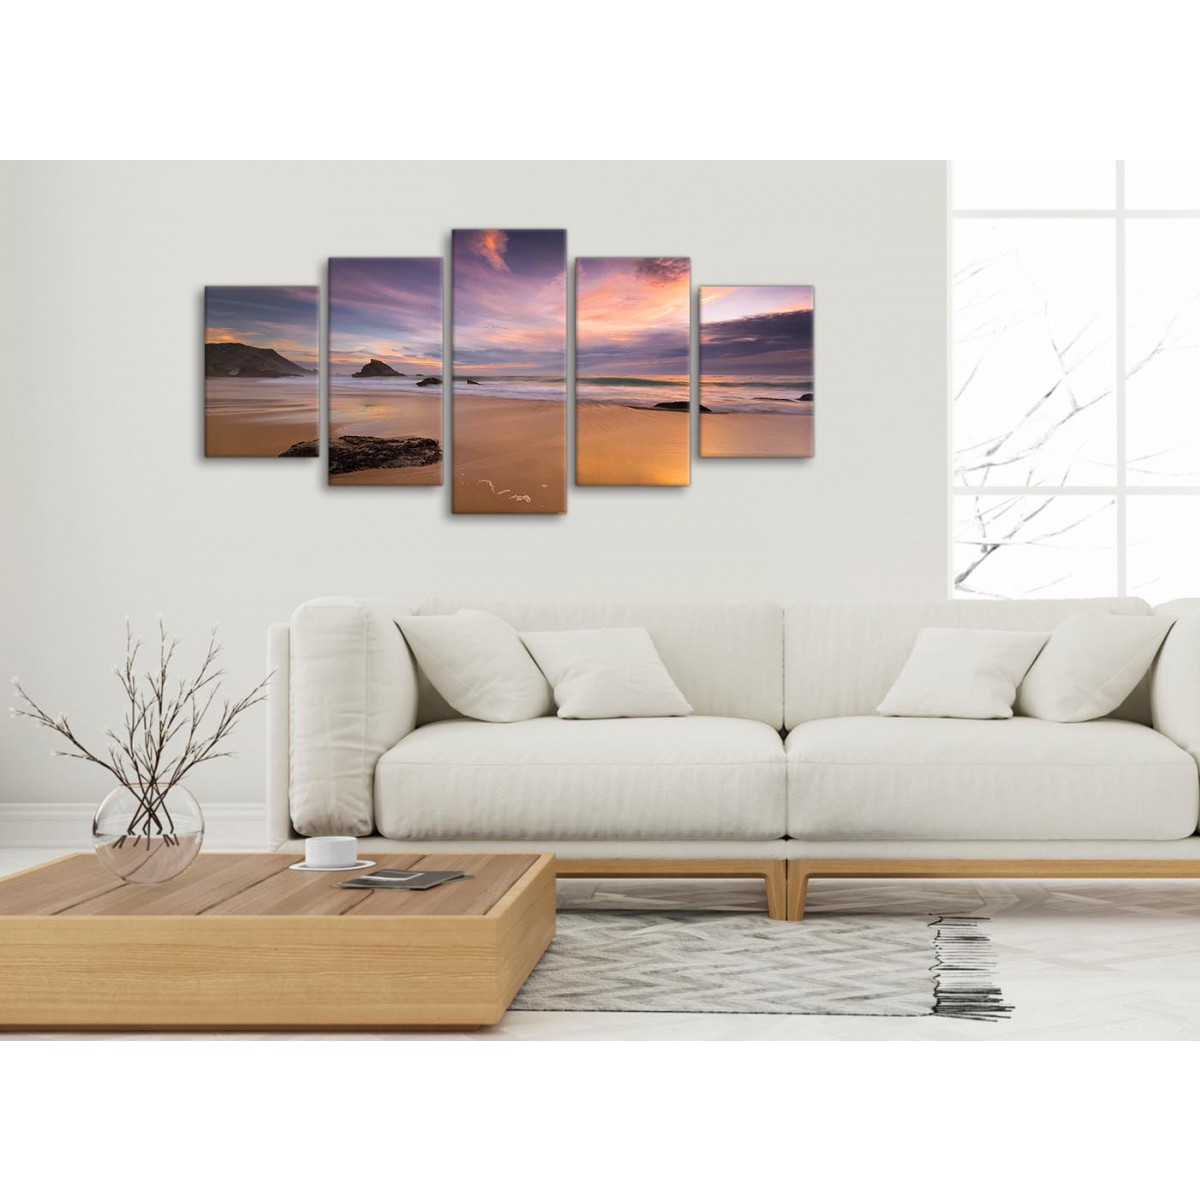 ENGLISH SEASIDE MORNING CANVAS WALL ART PICTURE LARGE 75 X 50 CM